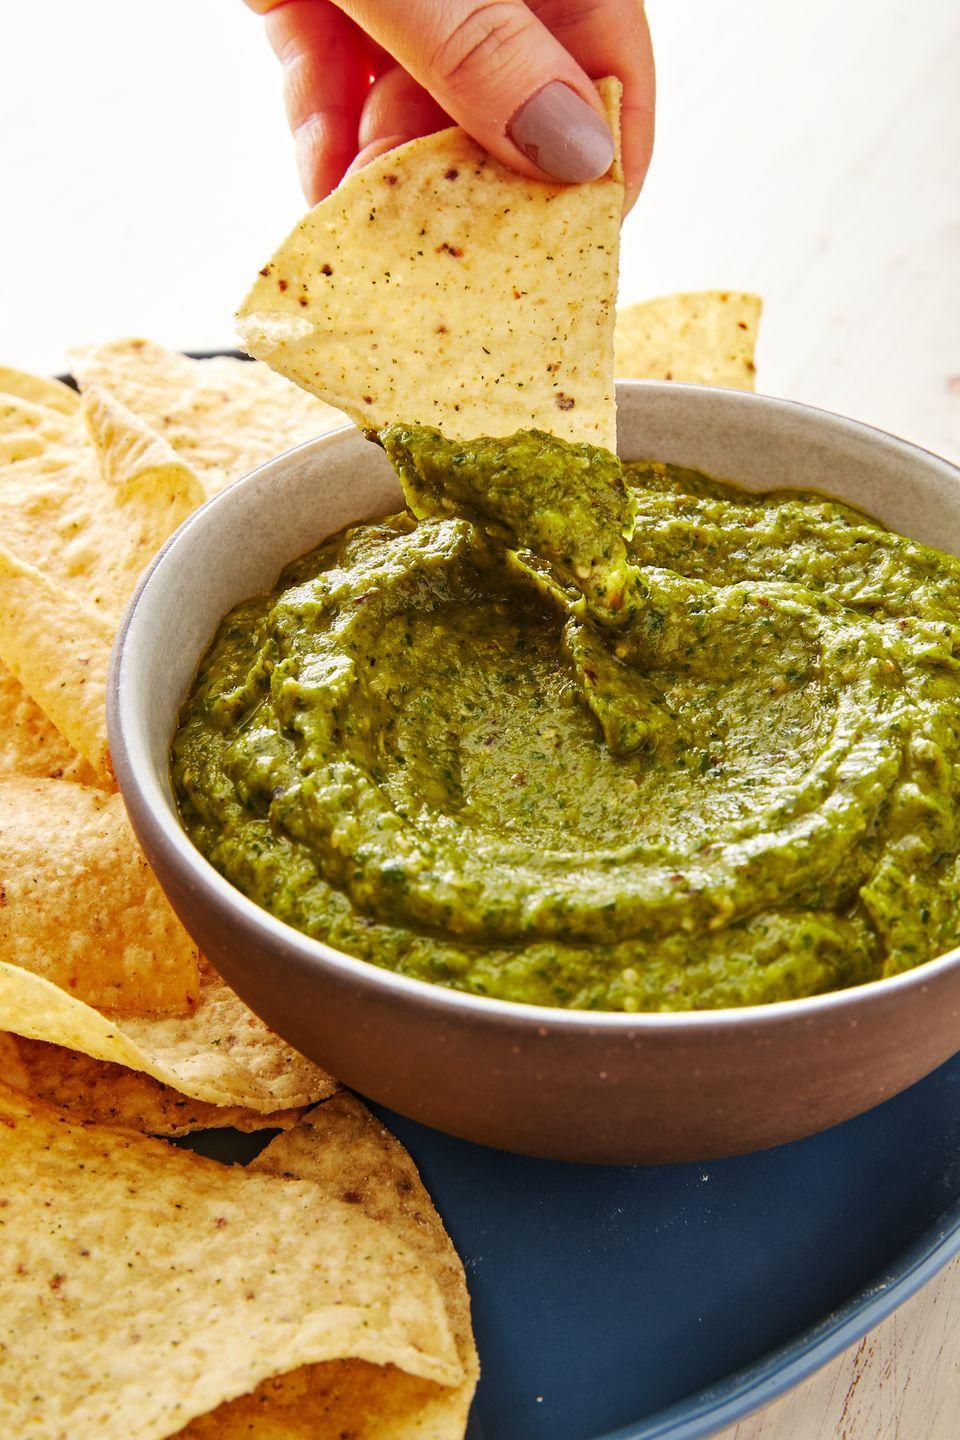 """<p>There are sooo many recipes you can use the leftovers for—if there are any!</p><p>Get the recipe from <a href=""""https://www.delish.com/cooking/recipe-ideas/a30222528/homemade-salsa-verde-recipe/"""" rel=""""nofollow noopener"""" target=""""_blank"""" data-ylk=""""slk:Delish"""" class=""""link rapid-noclick-resp"""">Delish</a>.</p>"""